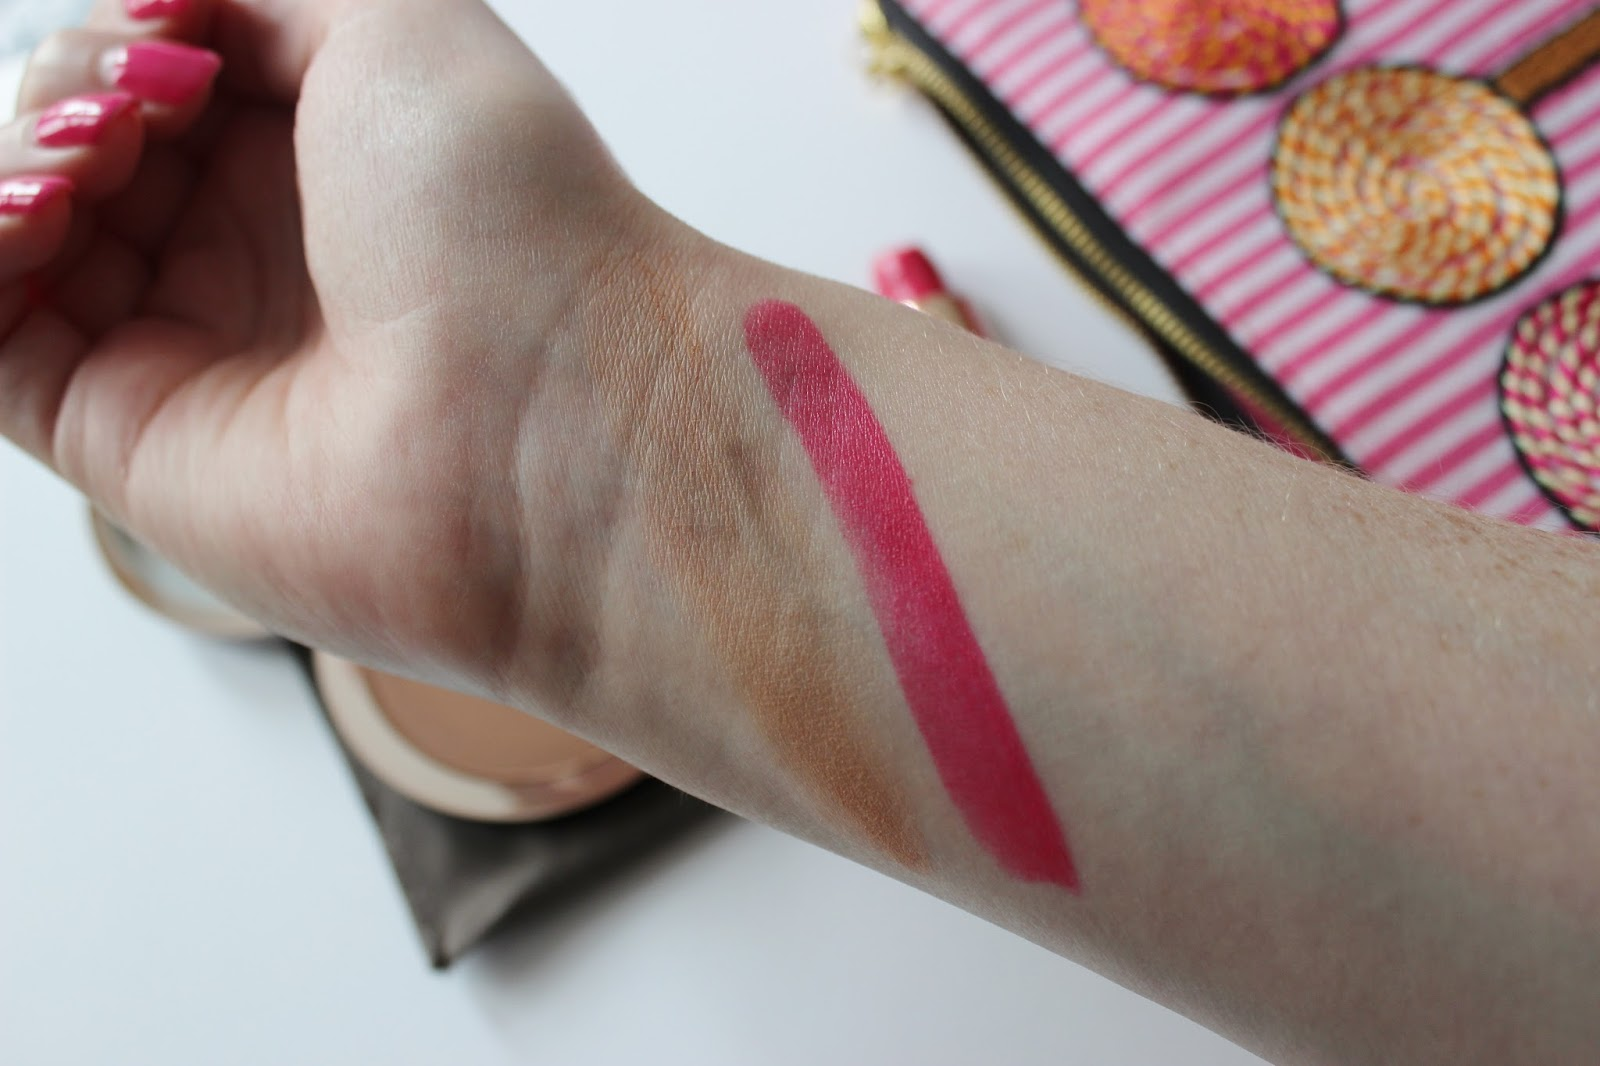 Delilah cosmetics sunset bronzer and Stiletto lipstick swatches